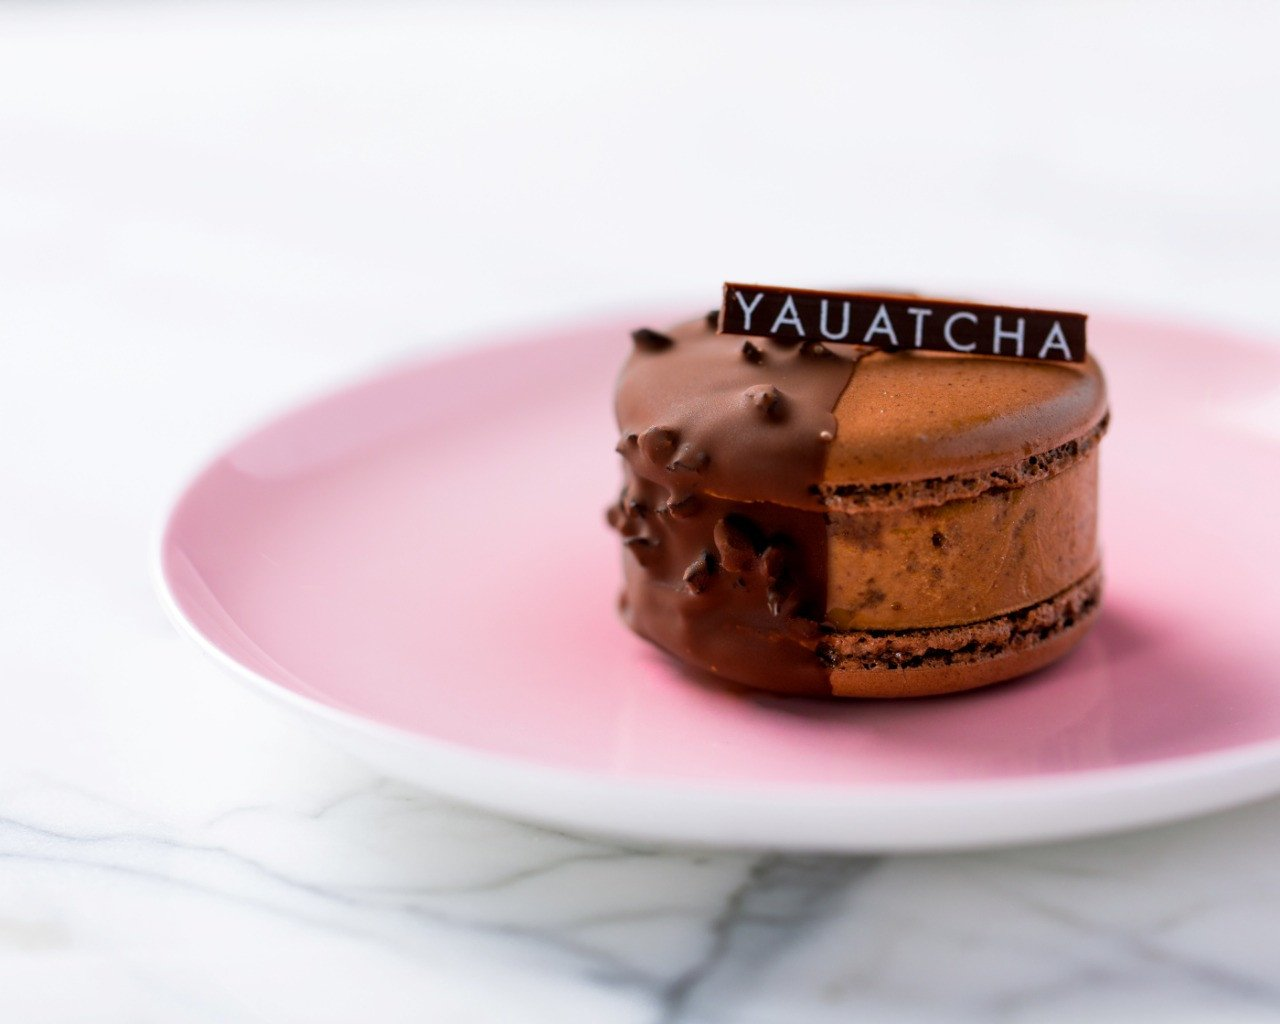 Ice Cream Macarons Anyone? Yauatcha Patisserie has something special for you